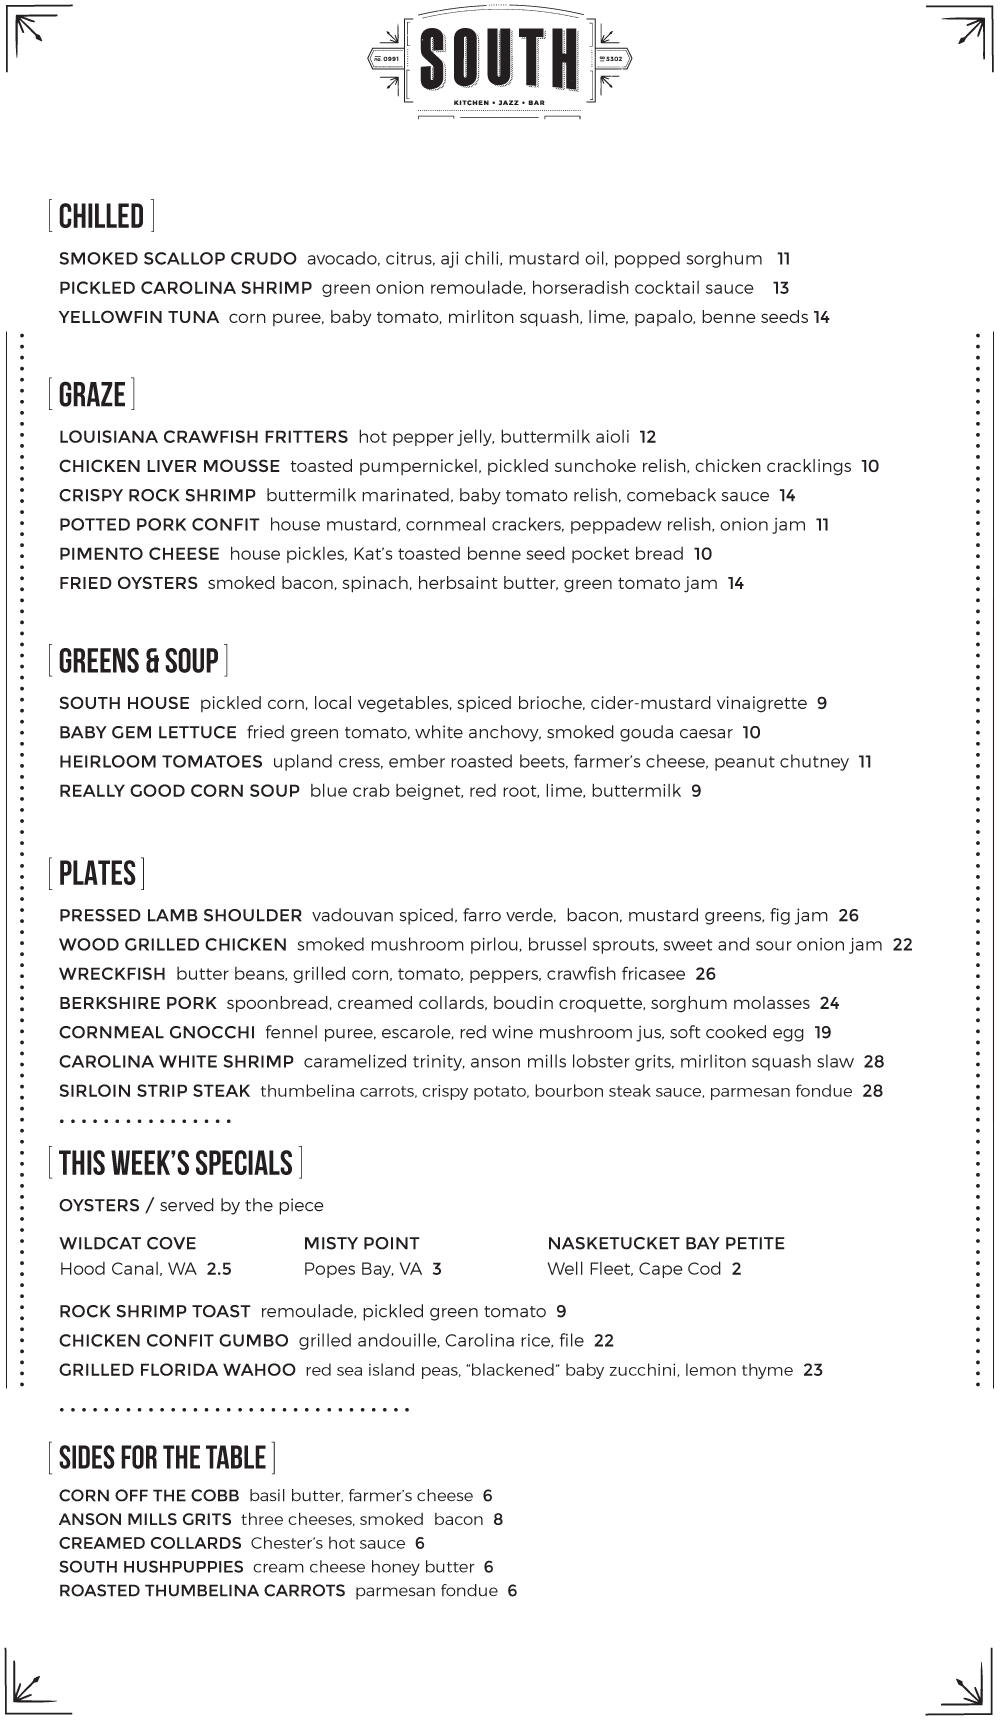 Check Out The Opening Menu At South Foobooz Louisiana Crawfish Chicken Liver Mousse Seafood Appetizers